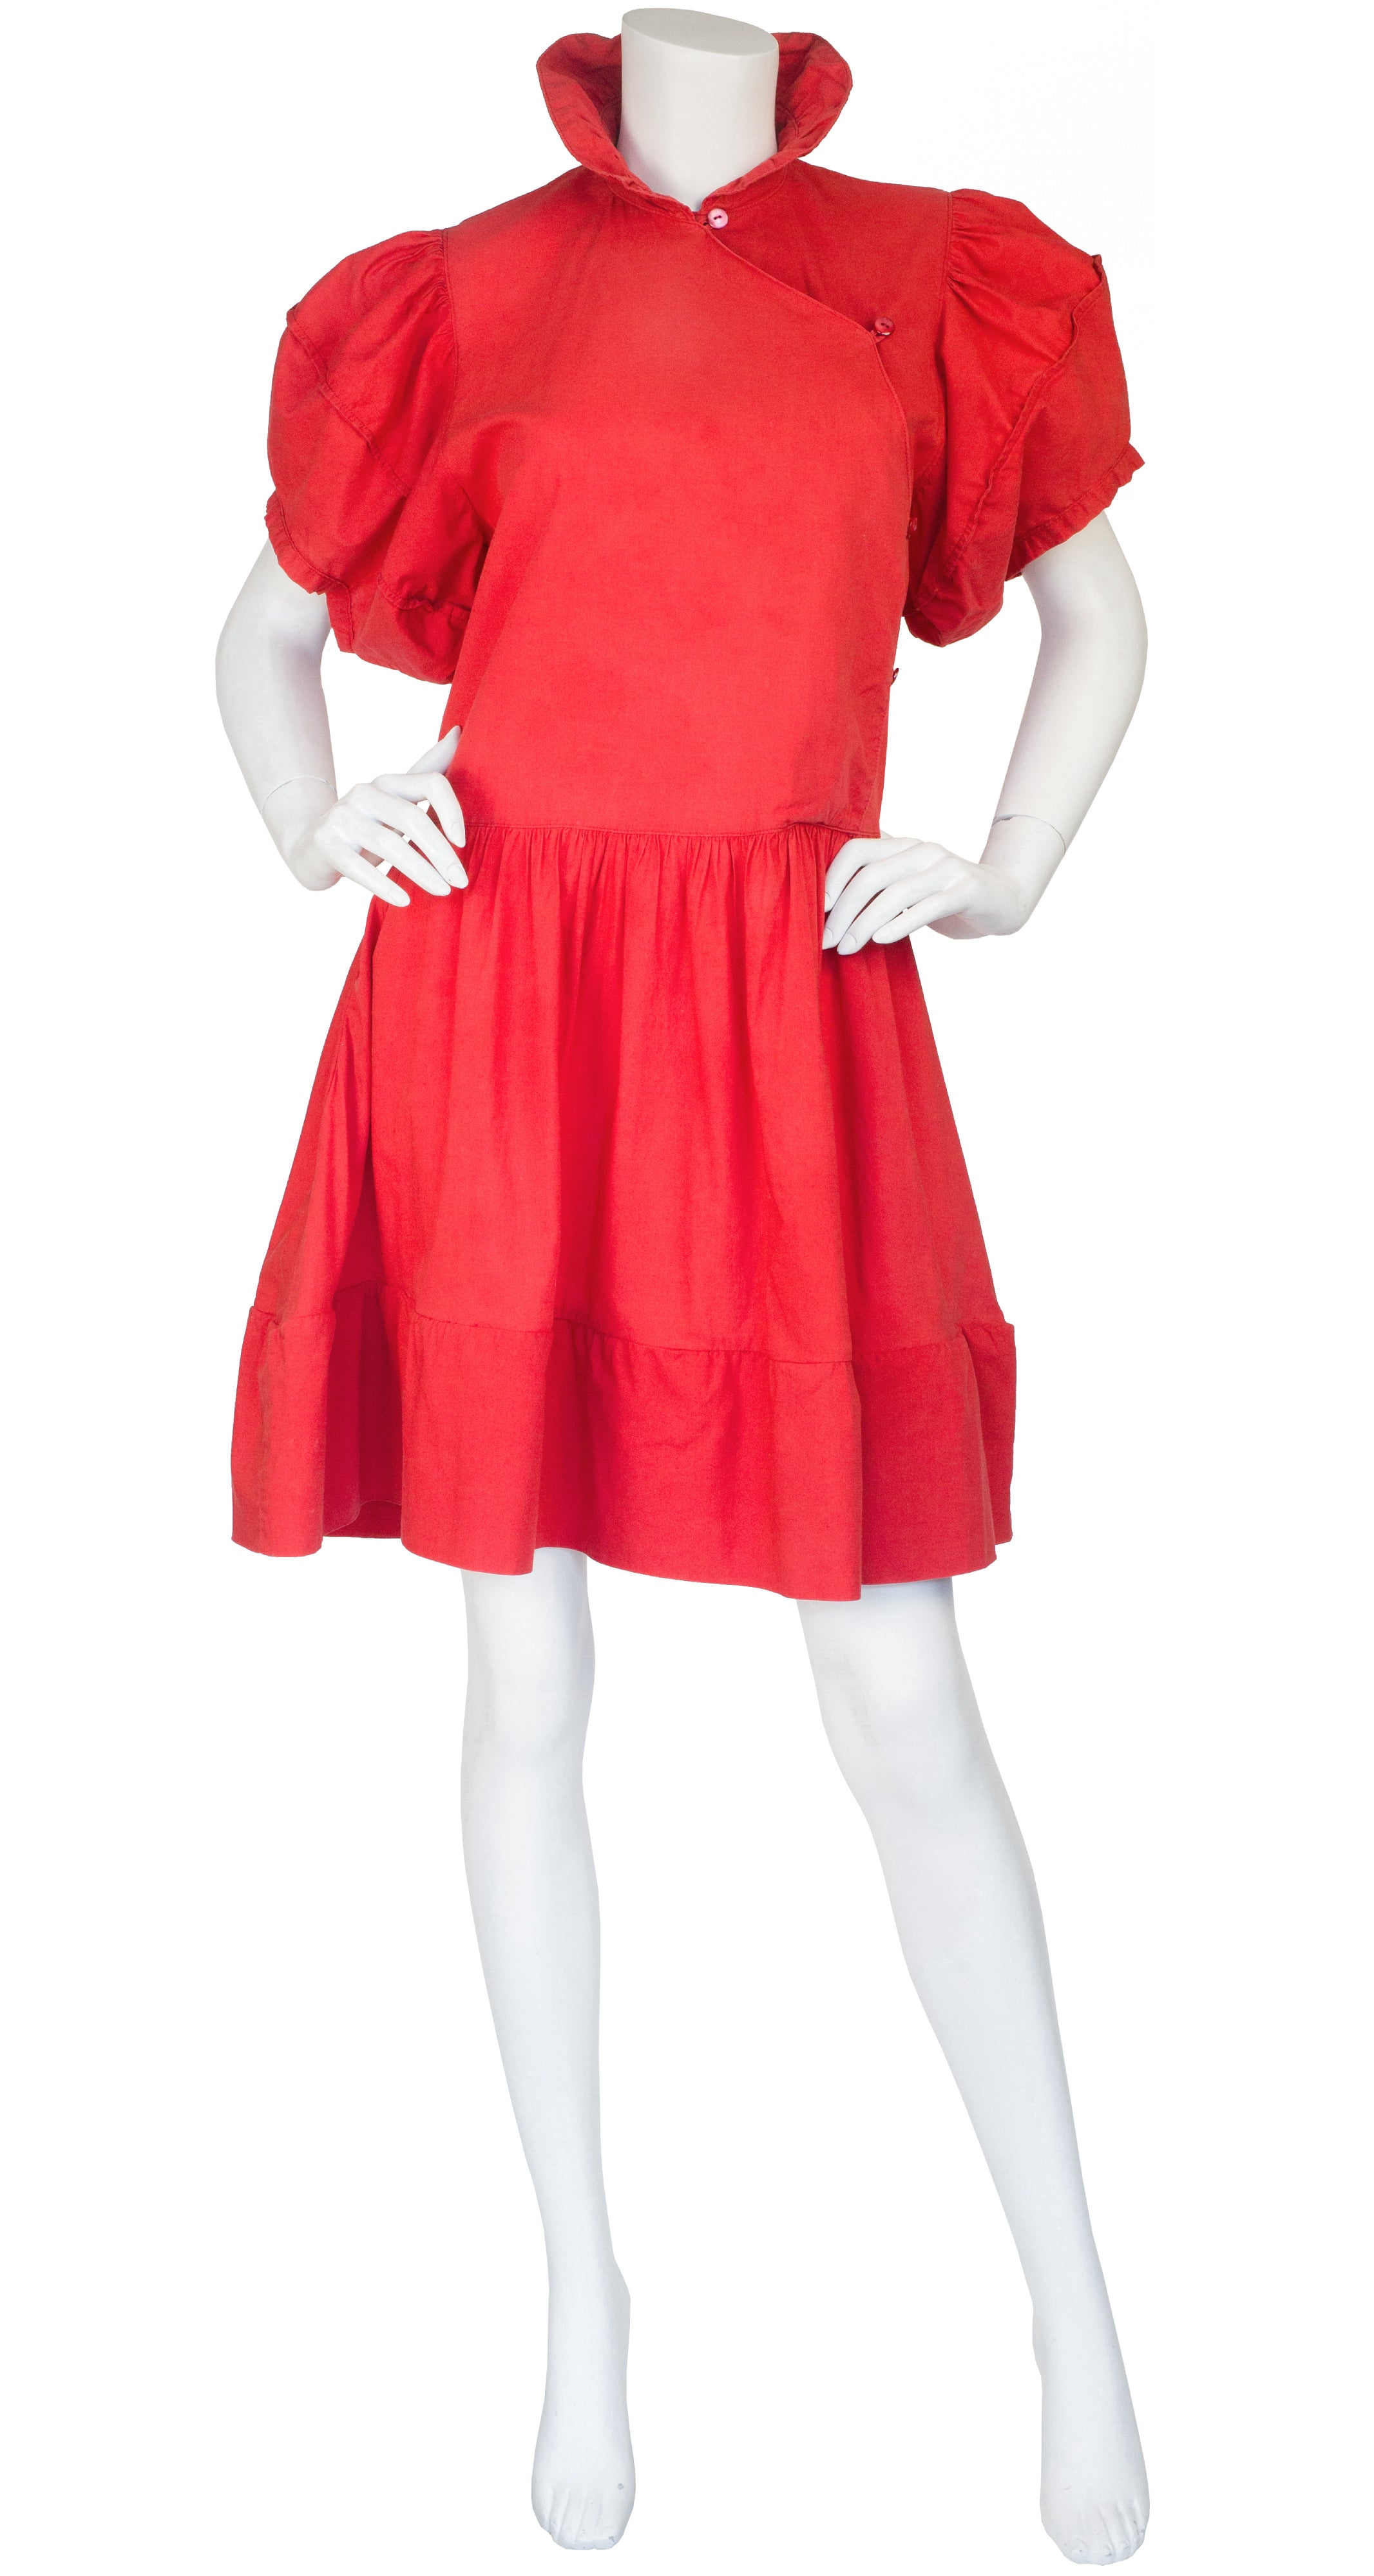 1981 Documented Red Cotton Puff Sleeve Dress